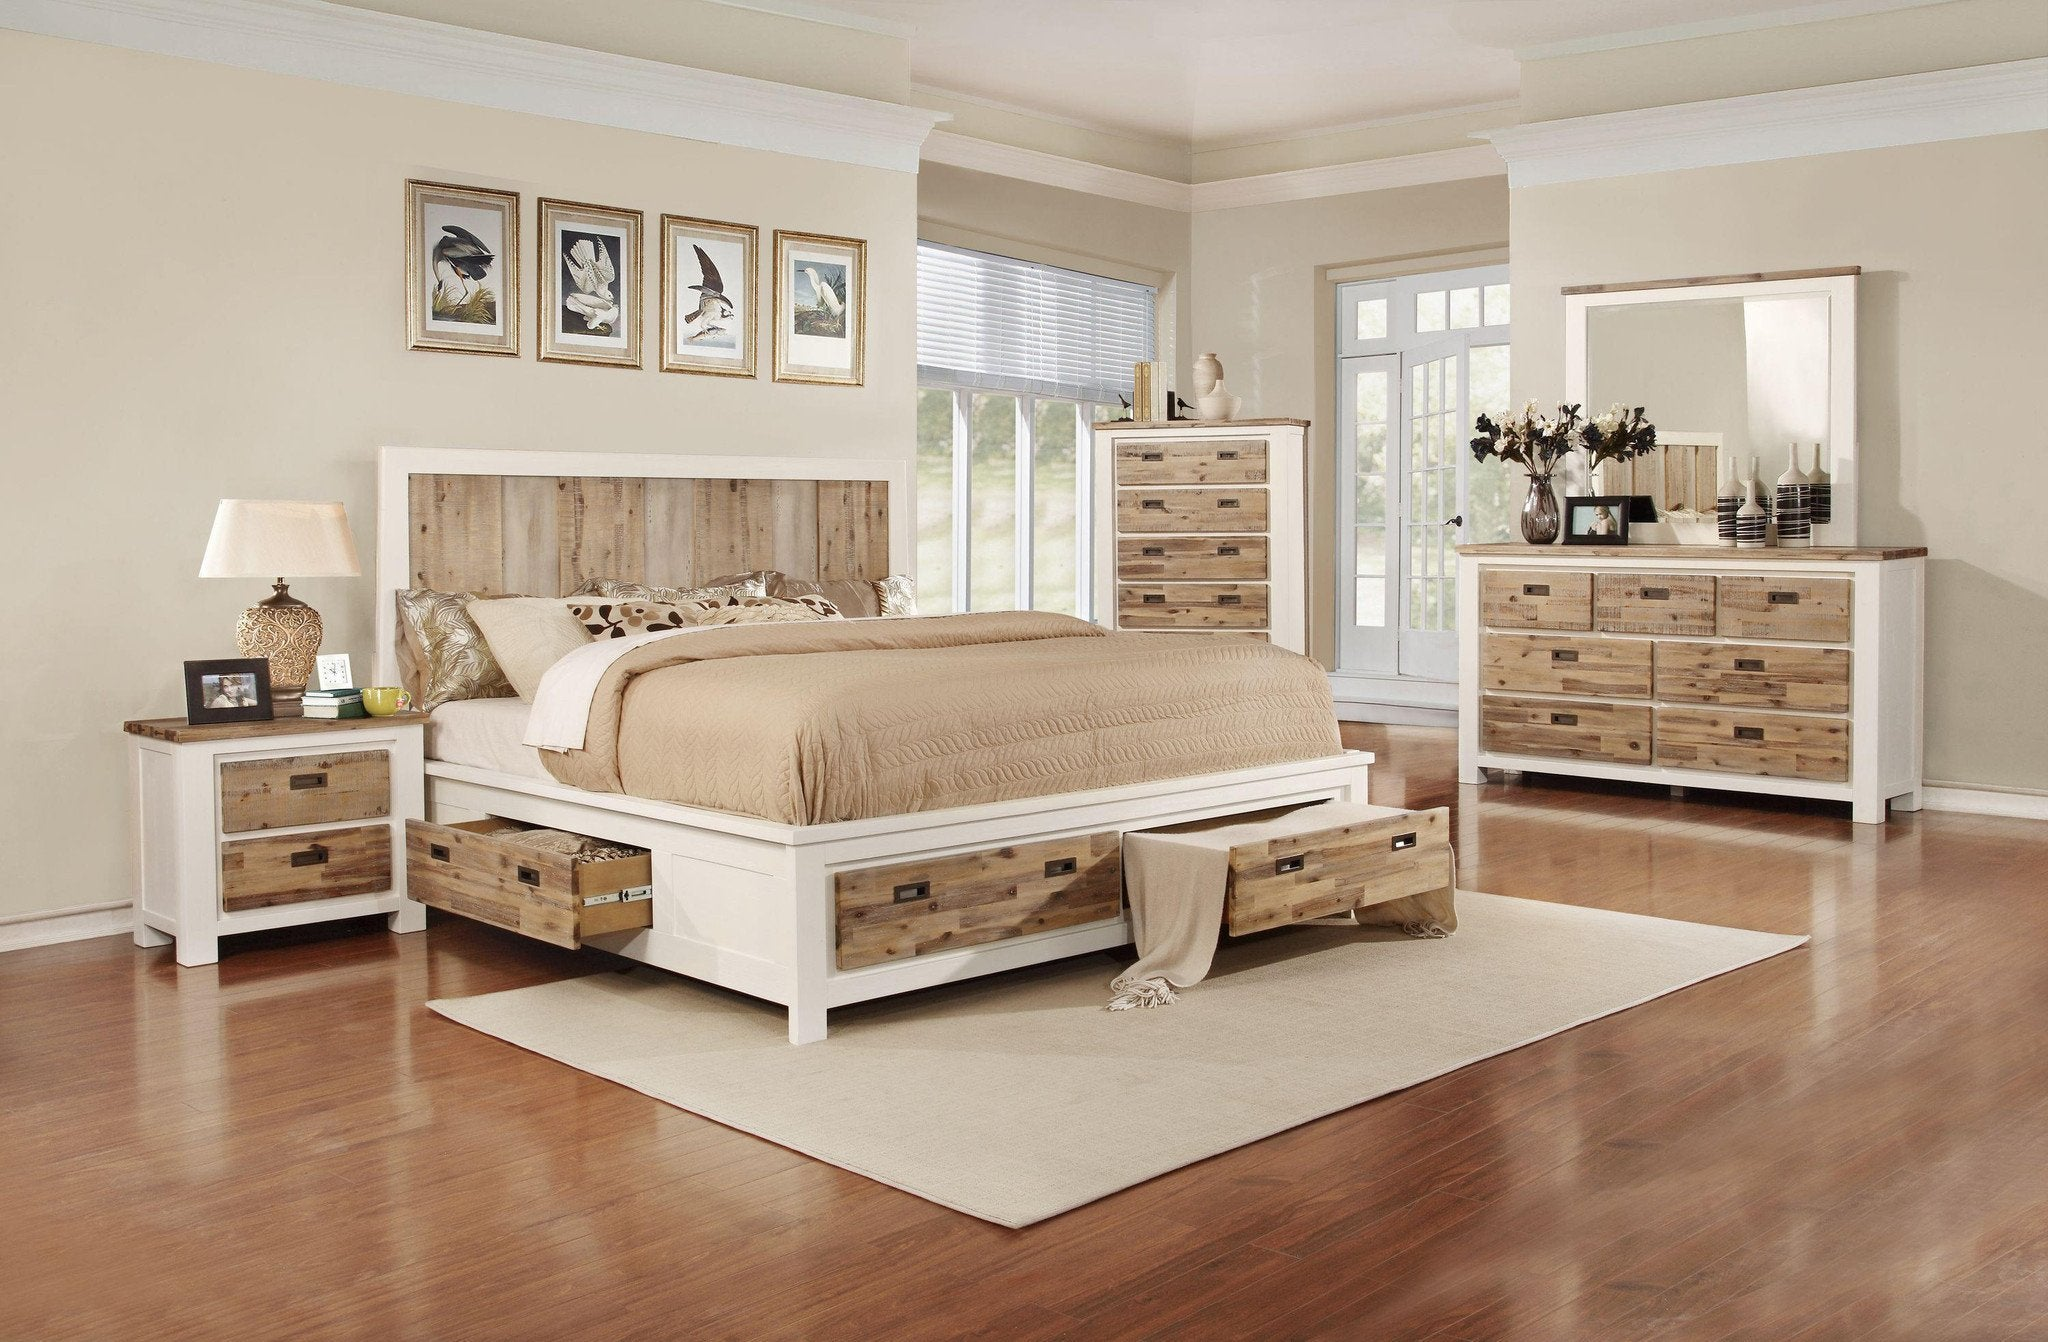 Country Rustic Collection Bedroom by Lifestyle | 4 The Home Store ...